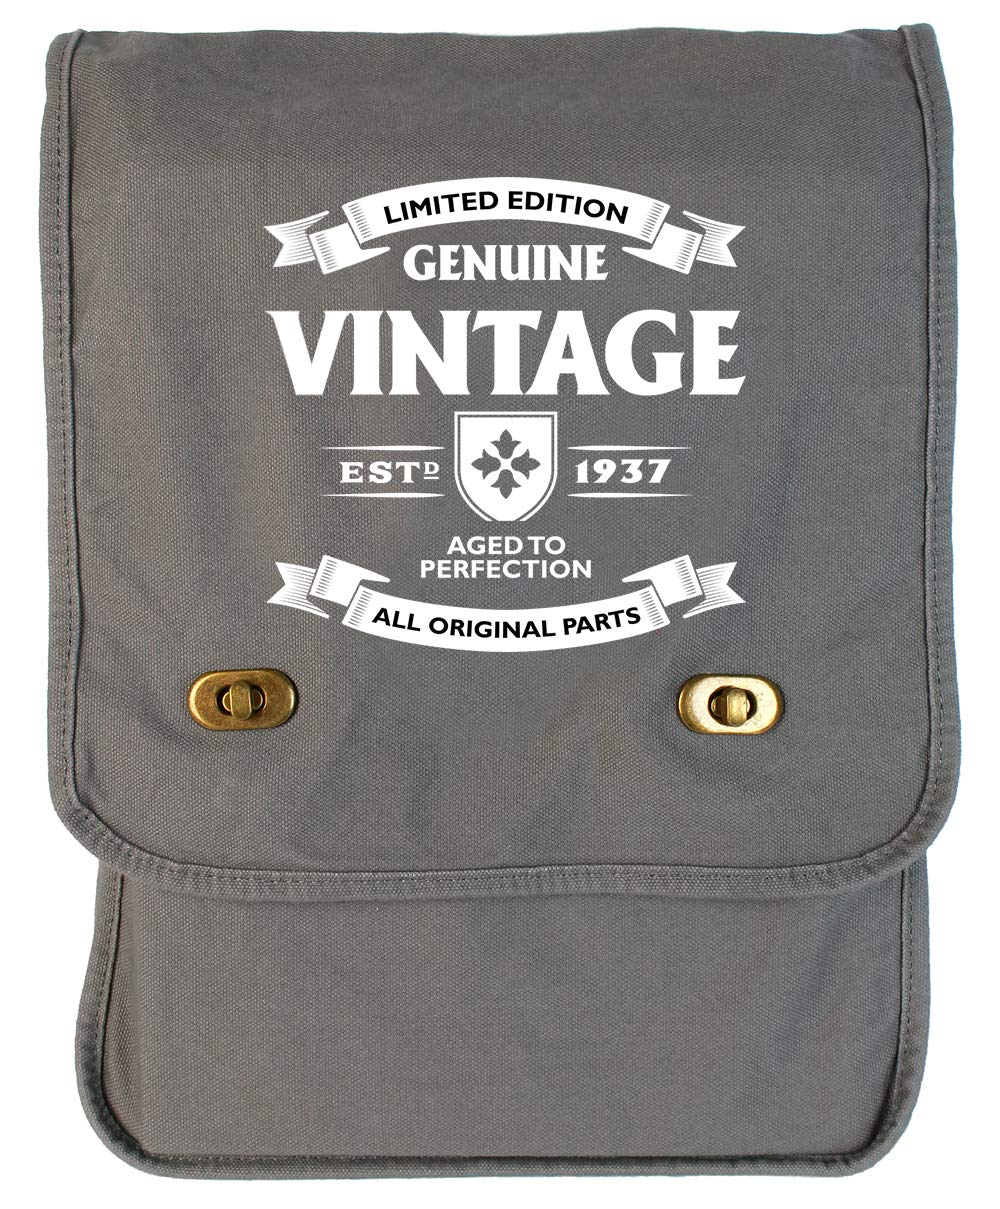 Tenacitee Aged to Perfection 1937 Grey Brushed Canvas Messenger Bag